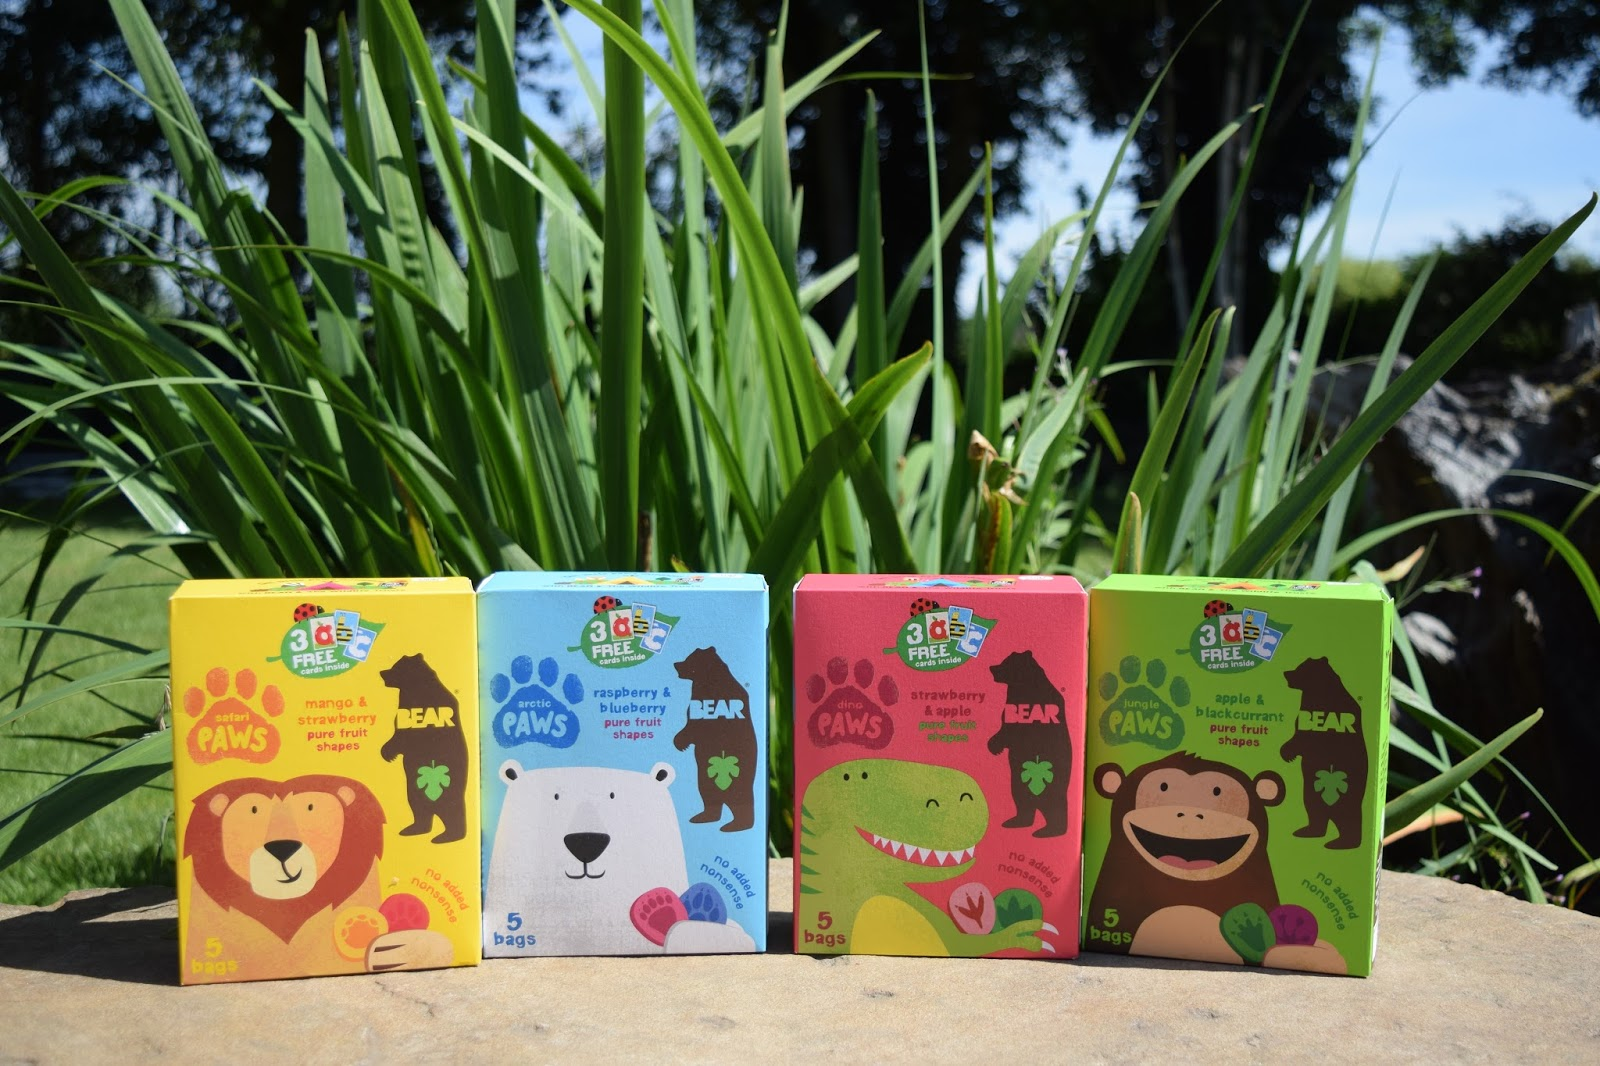 Making Mudpies with BEAR Nibbles Outdoor Alphabet Cards - We're going on an  adventure